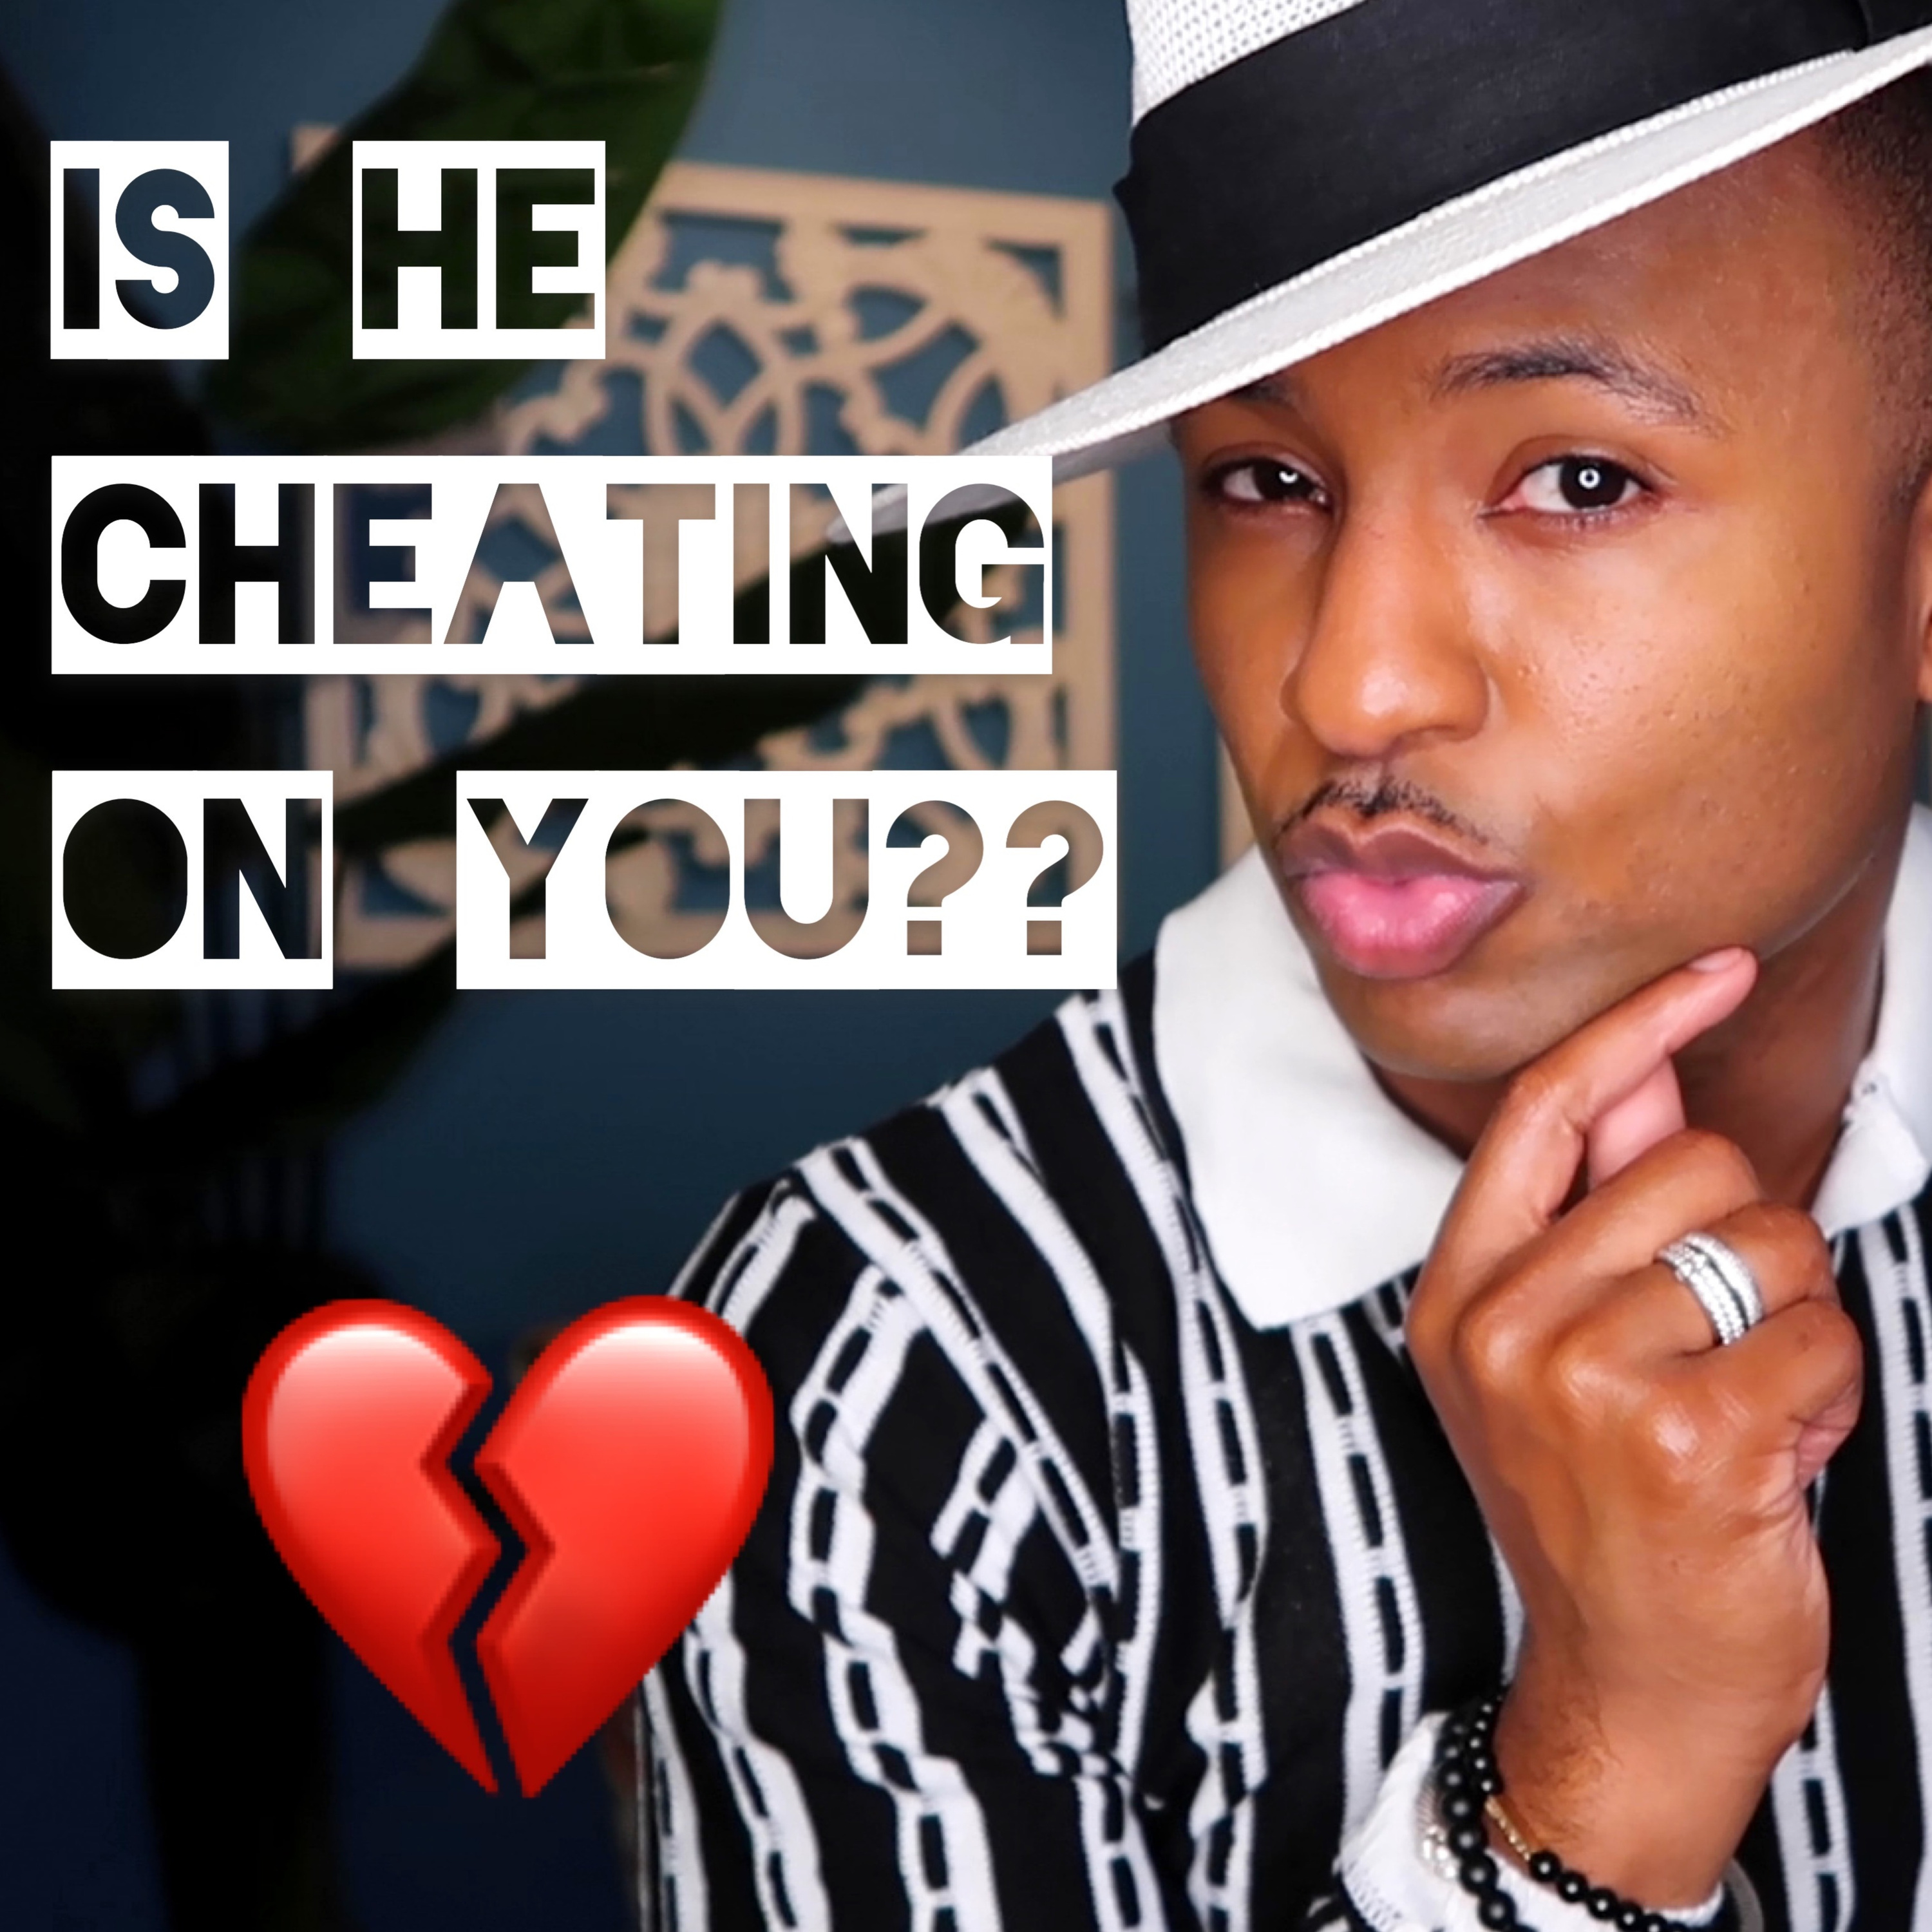 7 SIGNS HE / SHE IS CHEATING ON YOU! (MAJOR RED FLAGS)